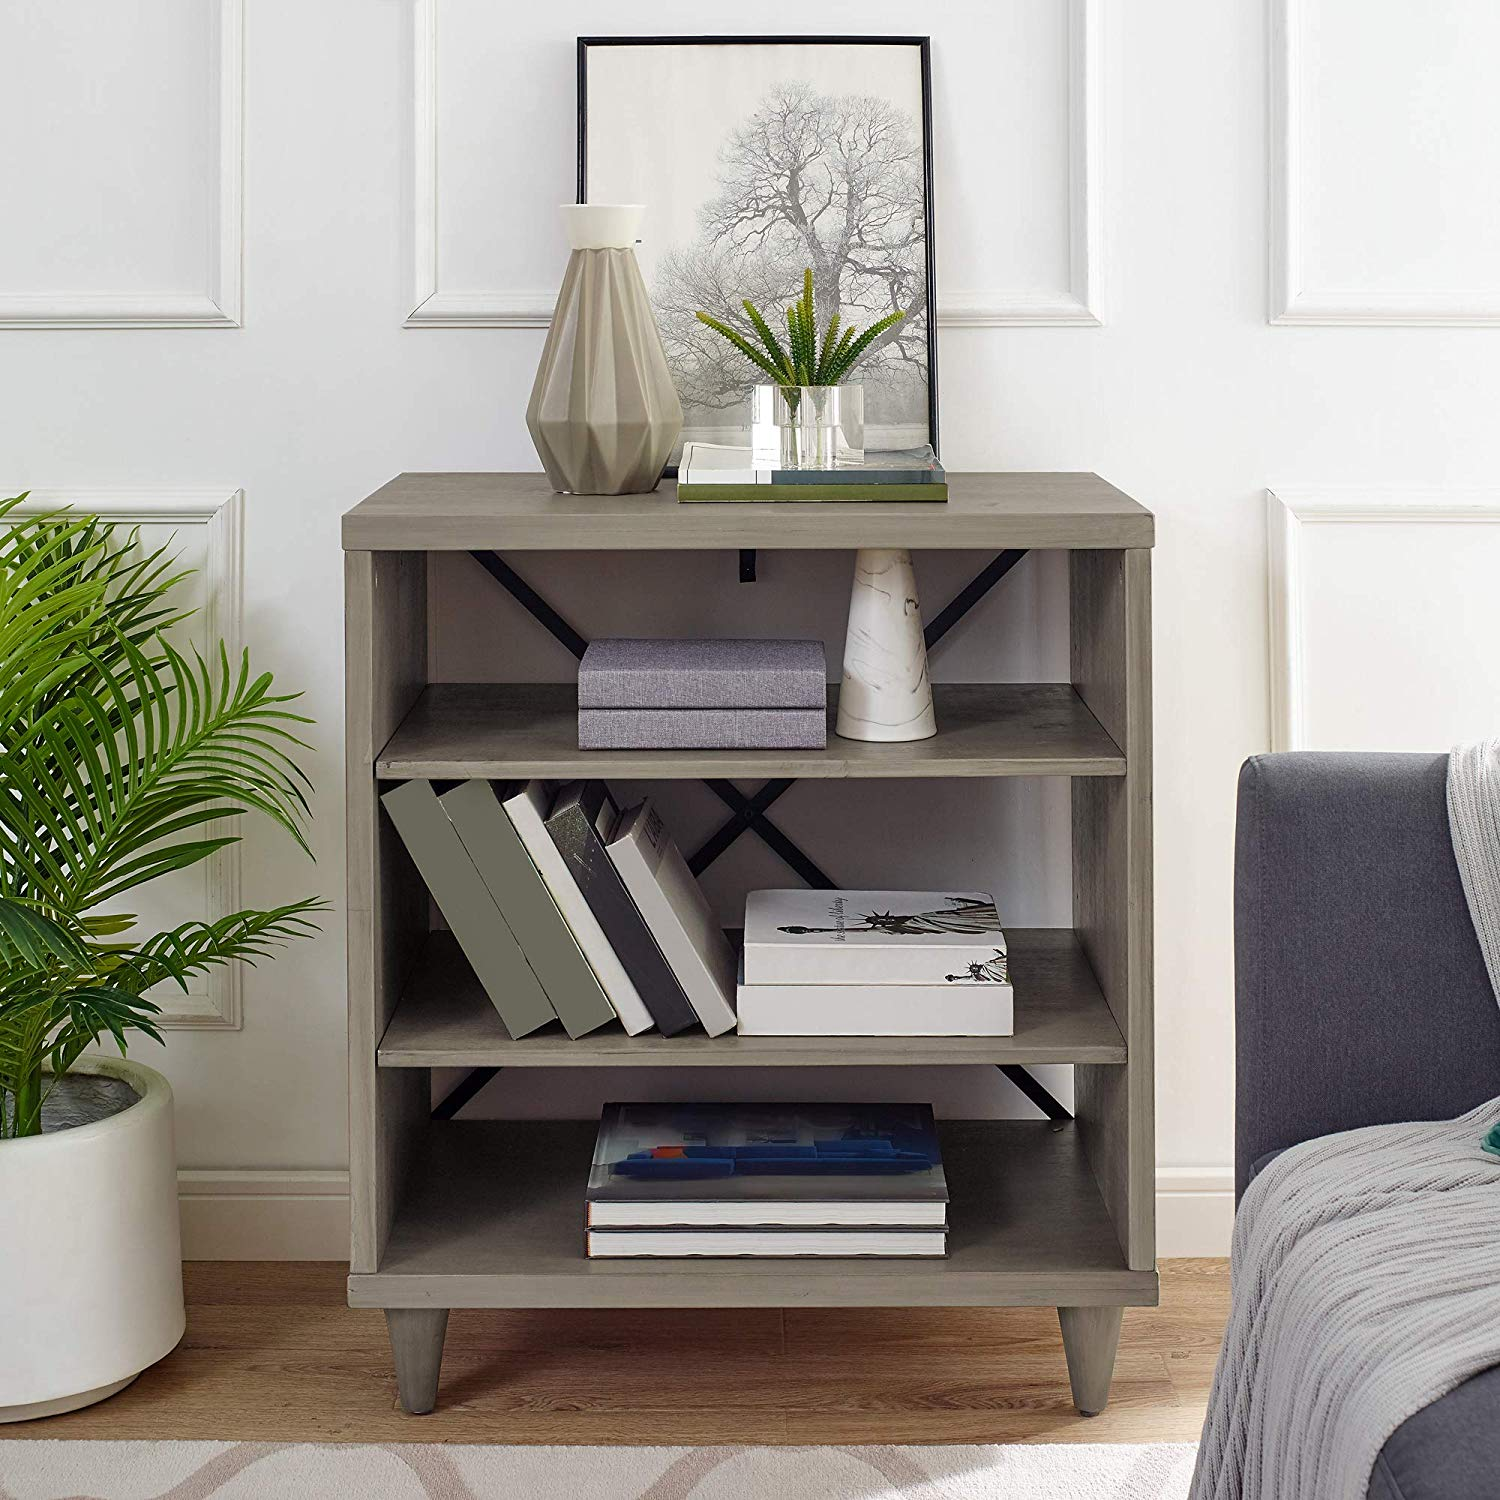 Classic Brands Rustic Farm House Three Shelf Solid Wood Bookcase/End Table with Legs